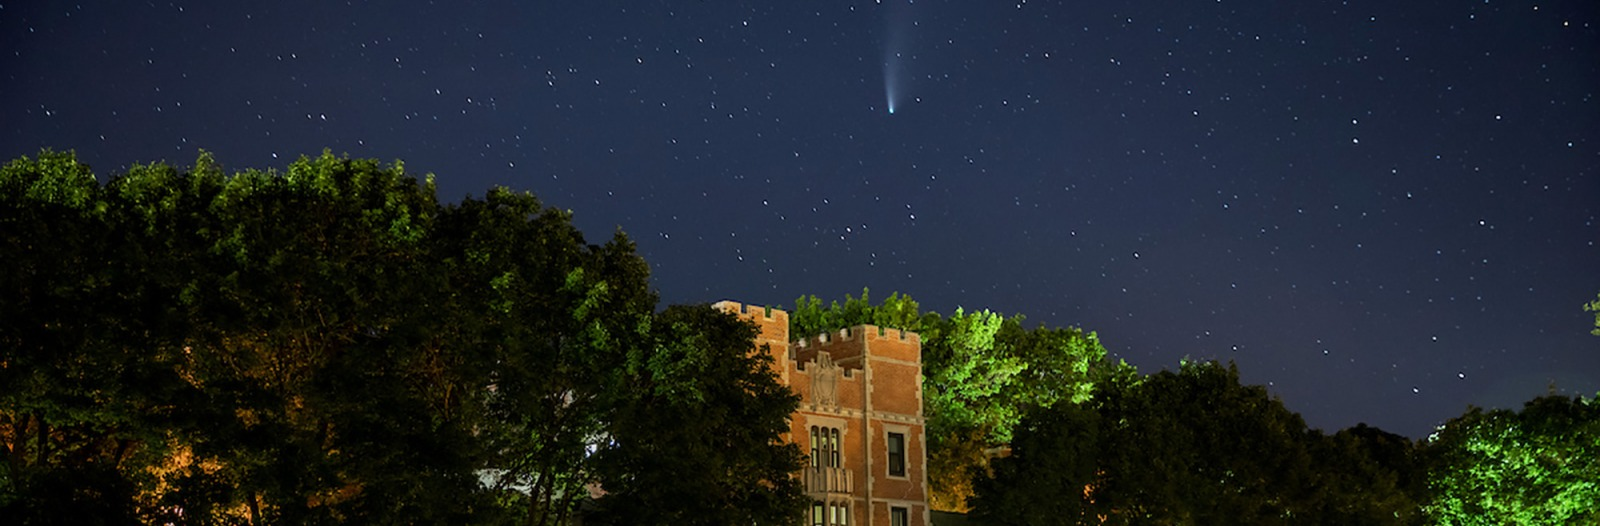 Comet NEOWISE over north campus